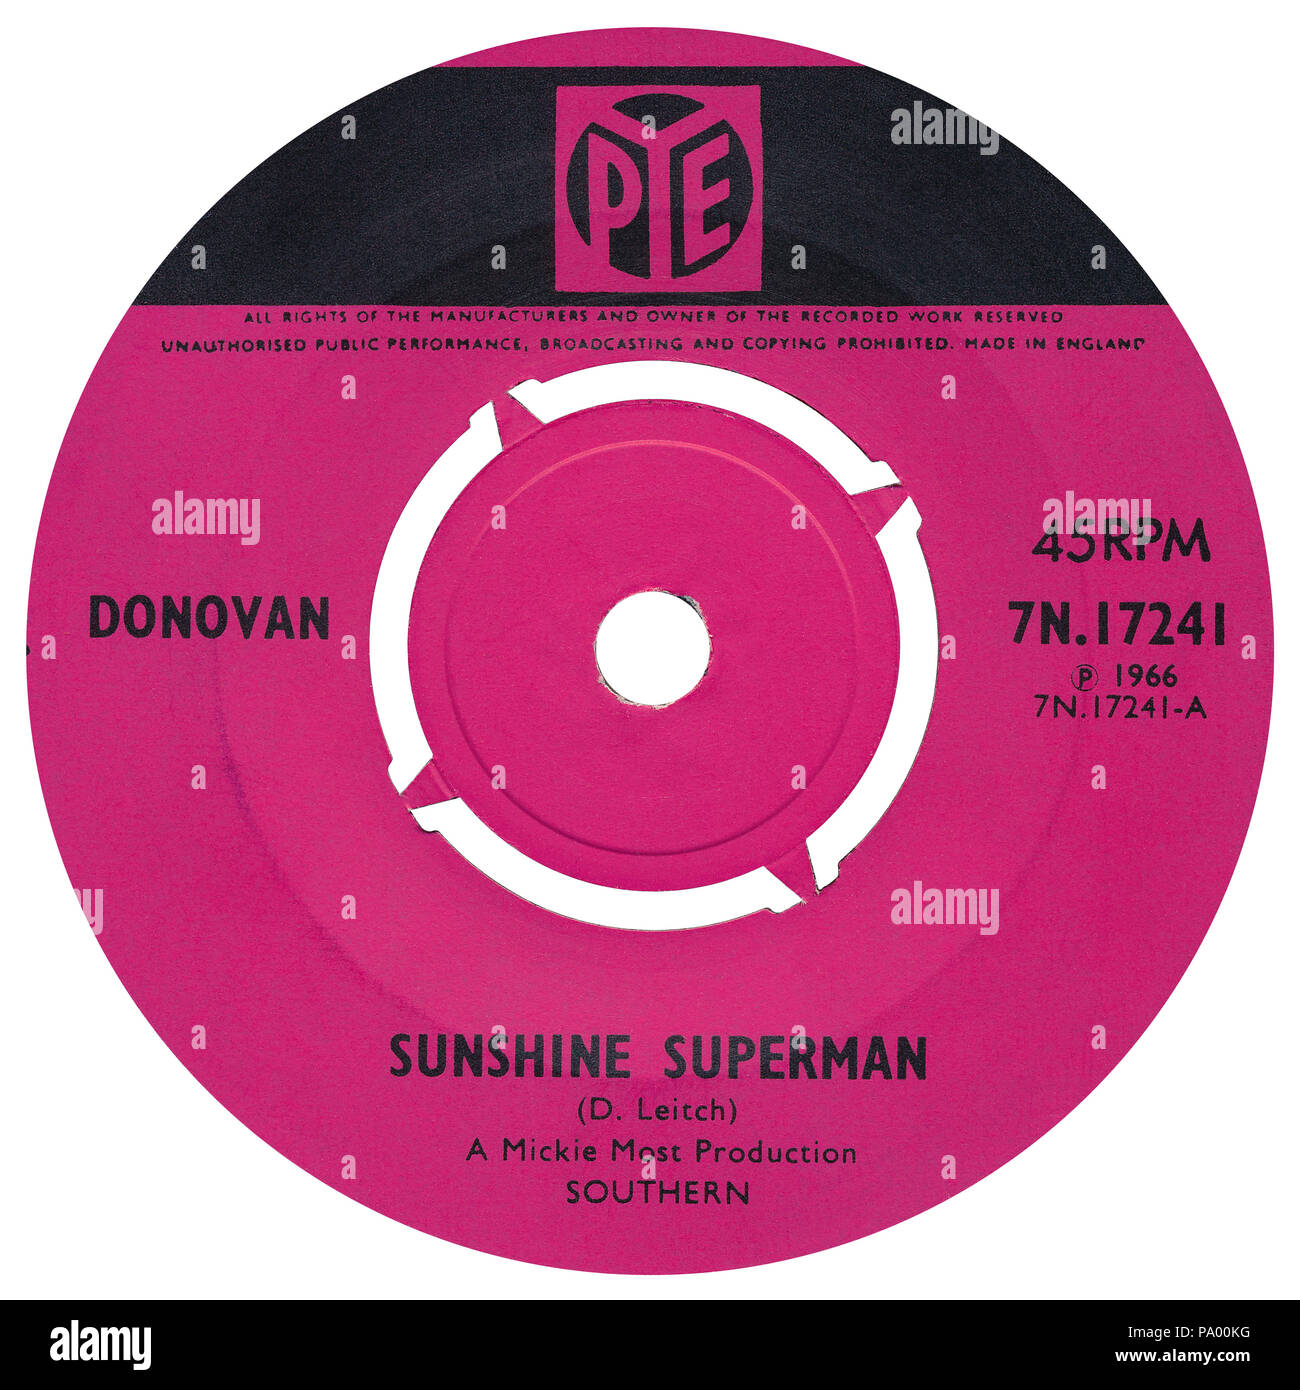 UK 45 rpm 7' single of Sunshine Superman by Donovan on the Pye label from 1966. Written by Donovan Leitch and produced by Mickie Most. - Stock Image